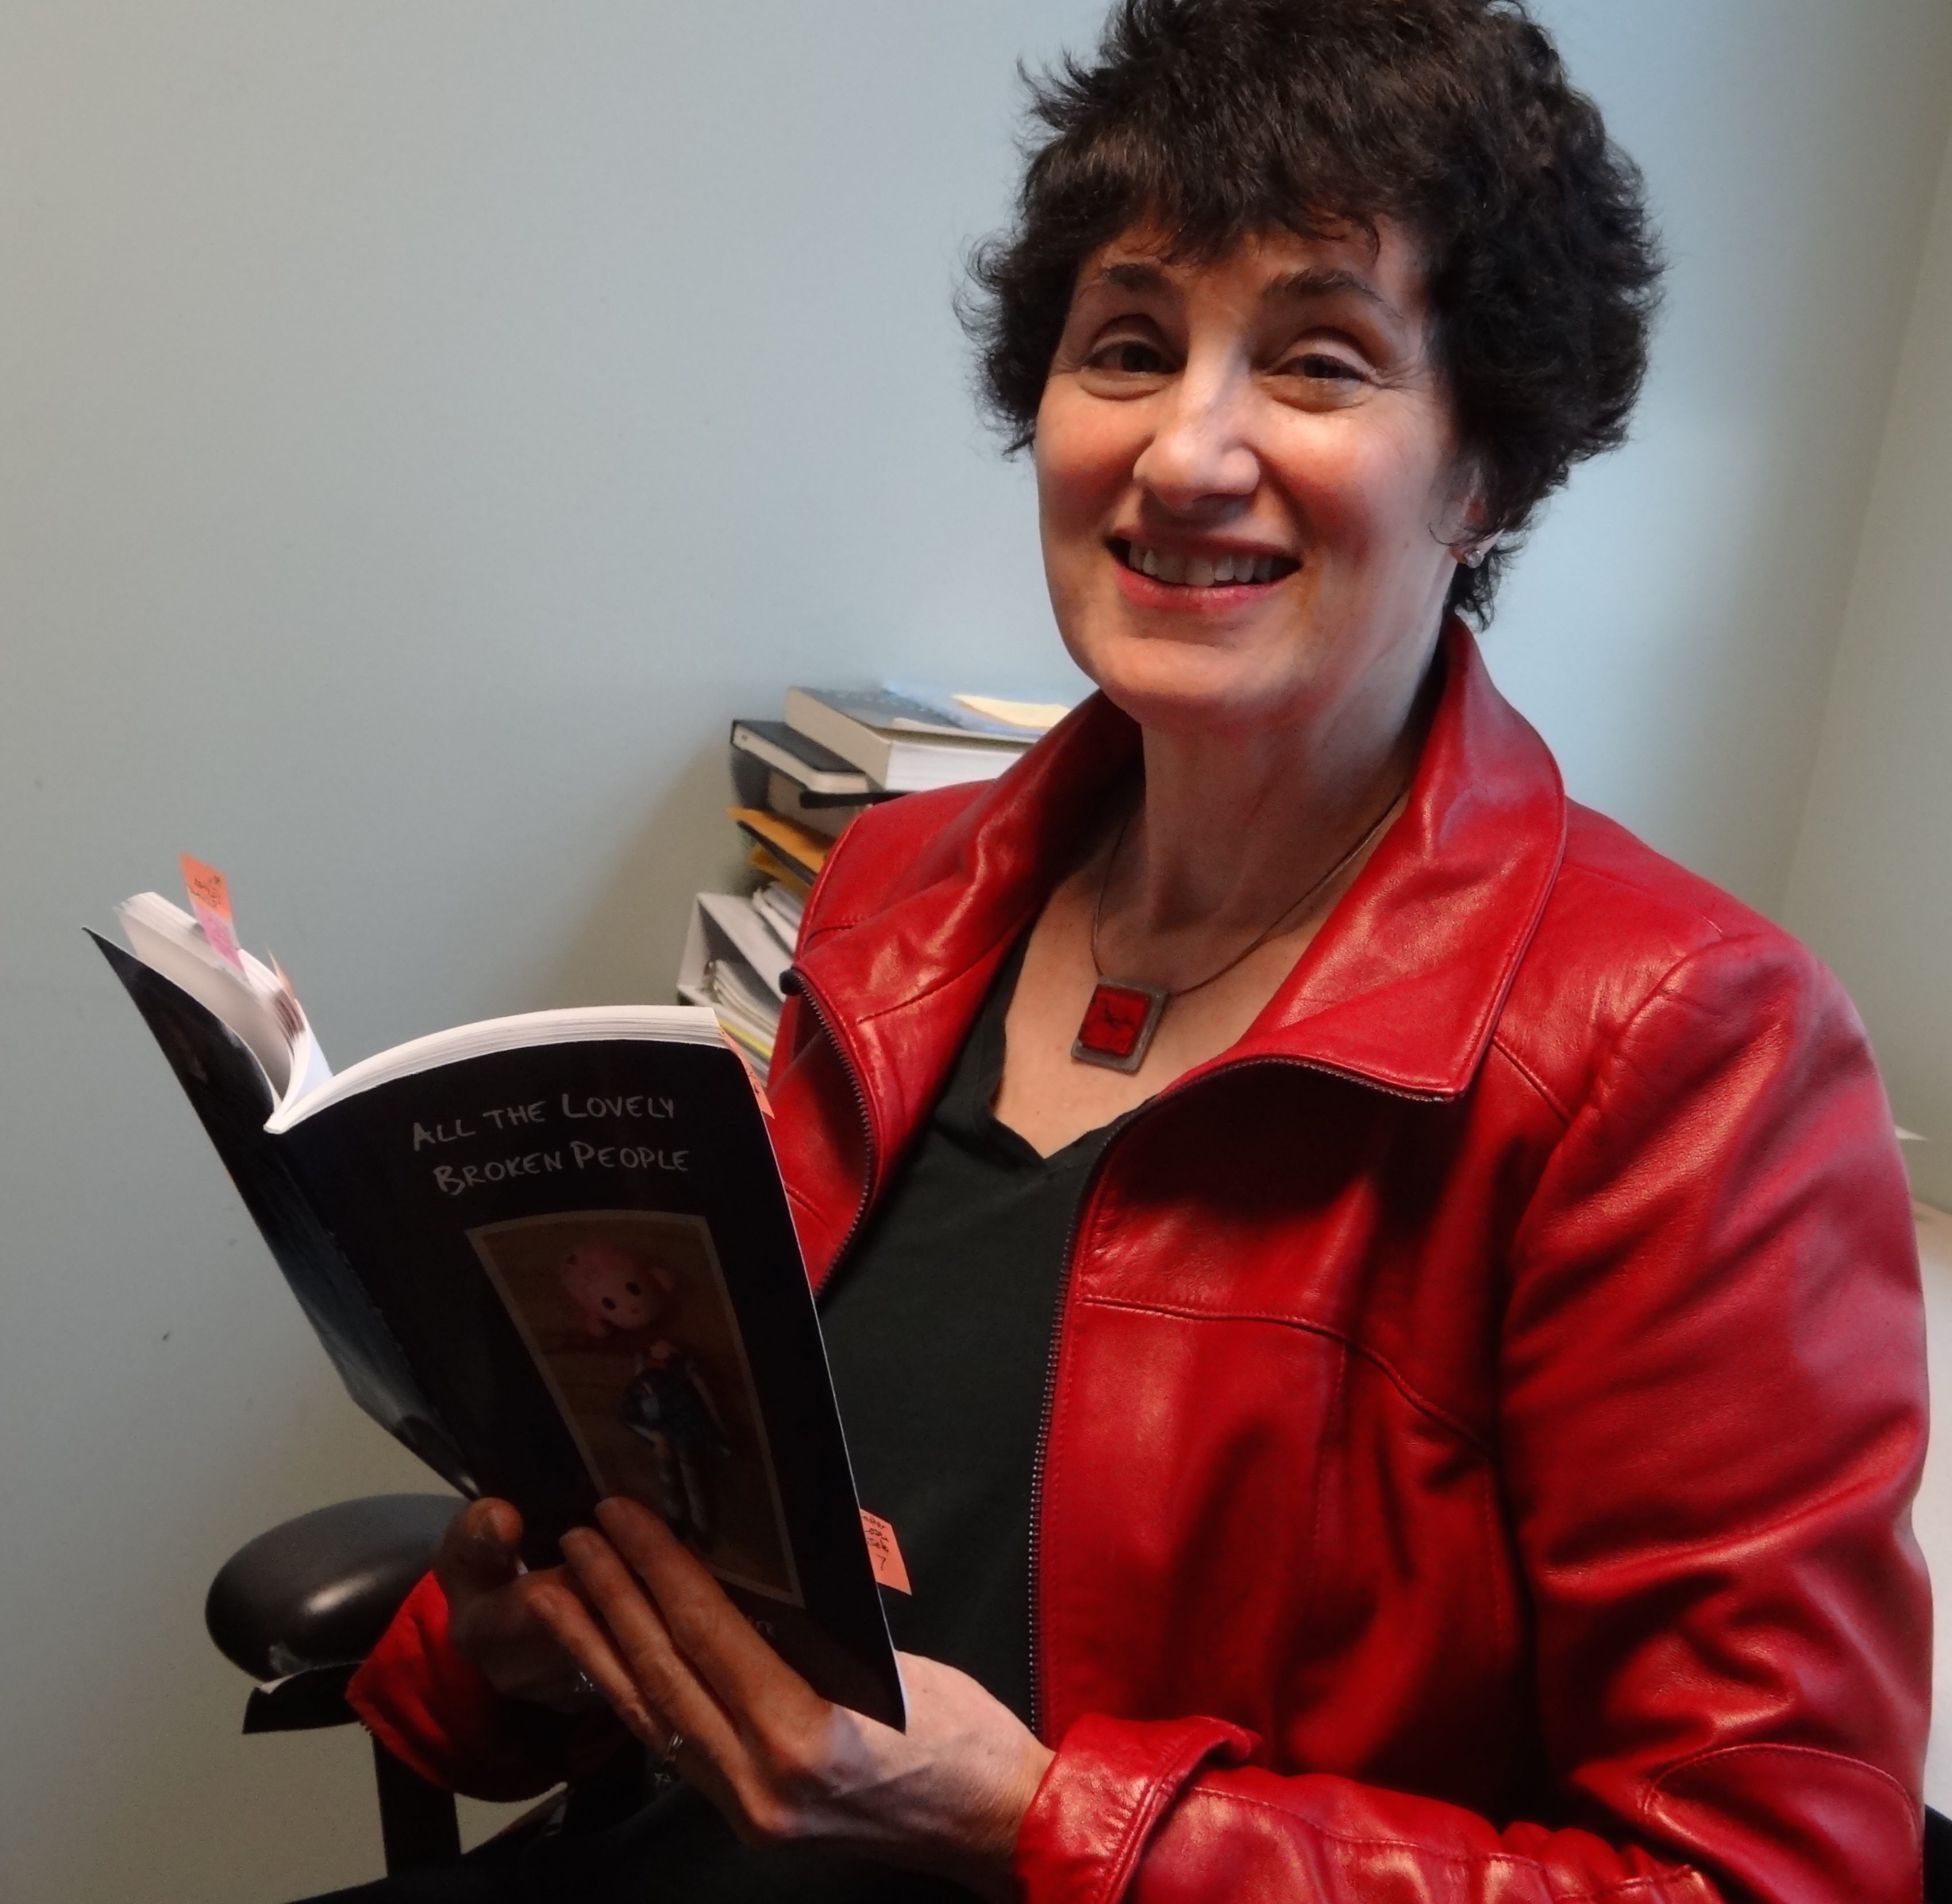 Marsha Barber and her latest collection of poetry, All the Lovely Broken People.